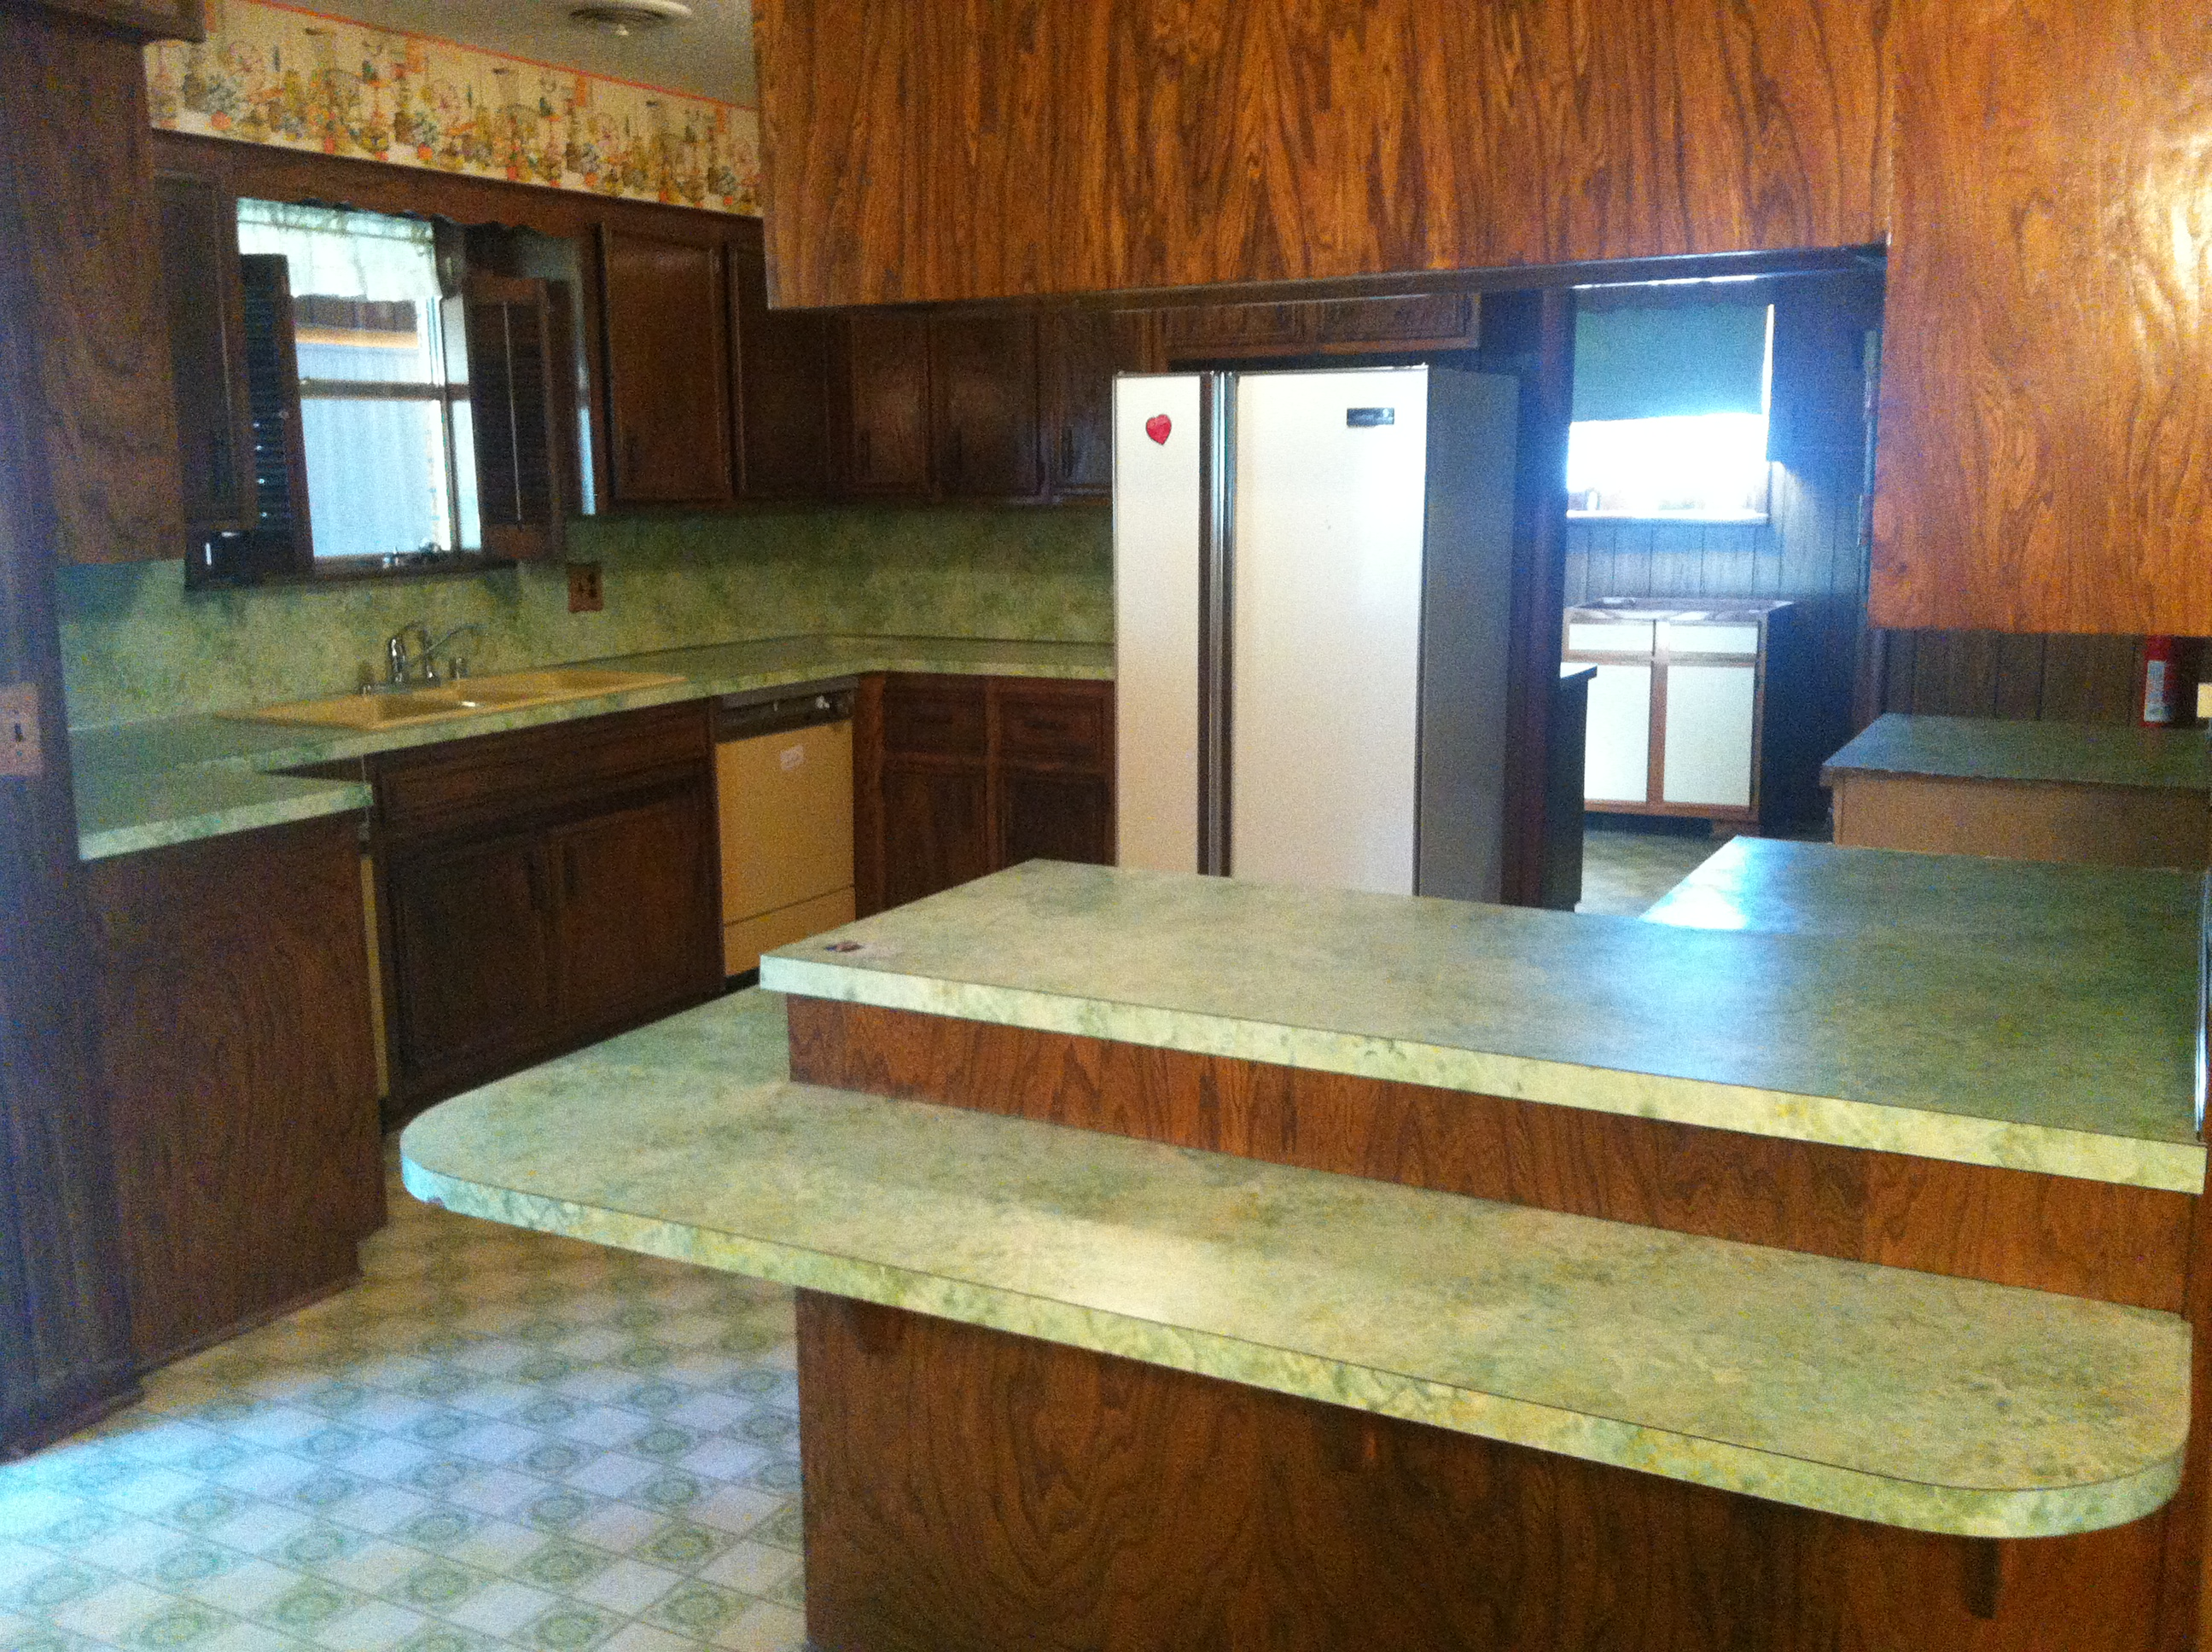 layout media design before medium remodeling gallery systems white dark countertop style and cabinetry ideas cottage unnamed shed by countertops kitchen beach cool low budget file islands after elegant cabinets from home cccbadbdcfcedfcbe